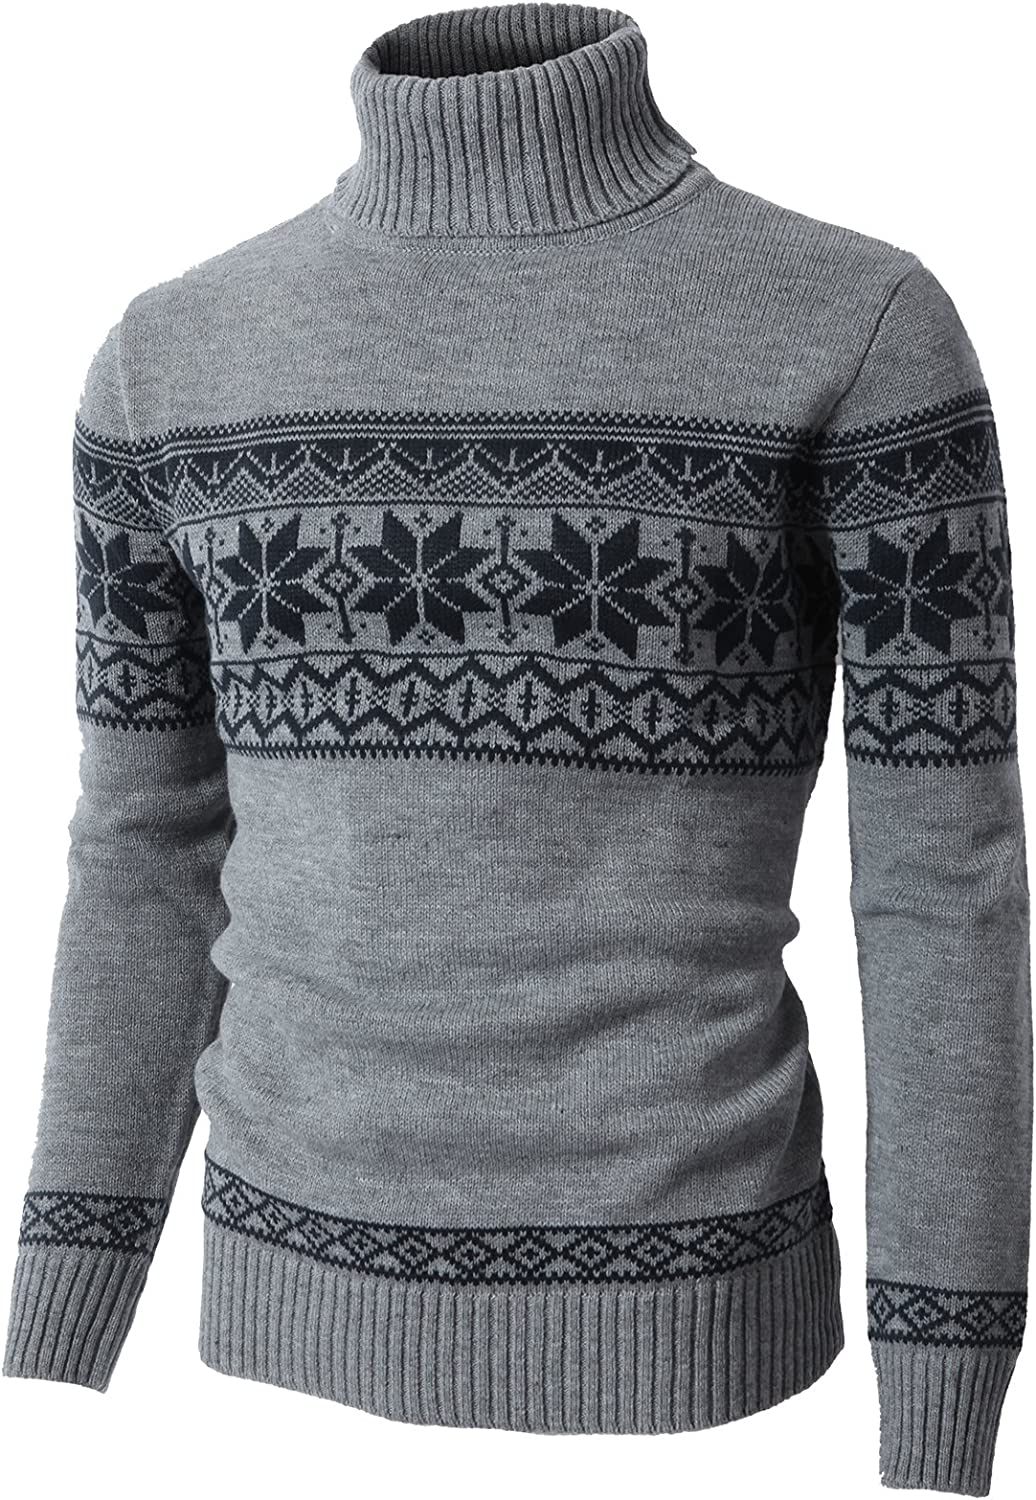 H2H Special price for a limited time Ranking TOP2 Mens Casual Slim Fit Knitted Pullover Swe Various of Thermal